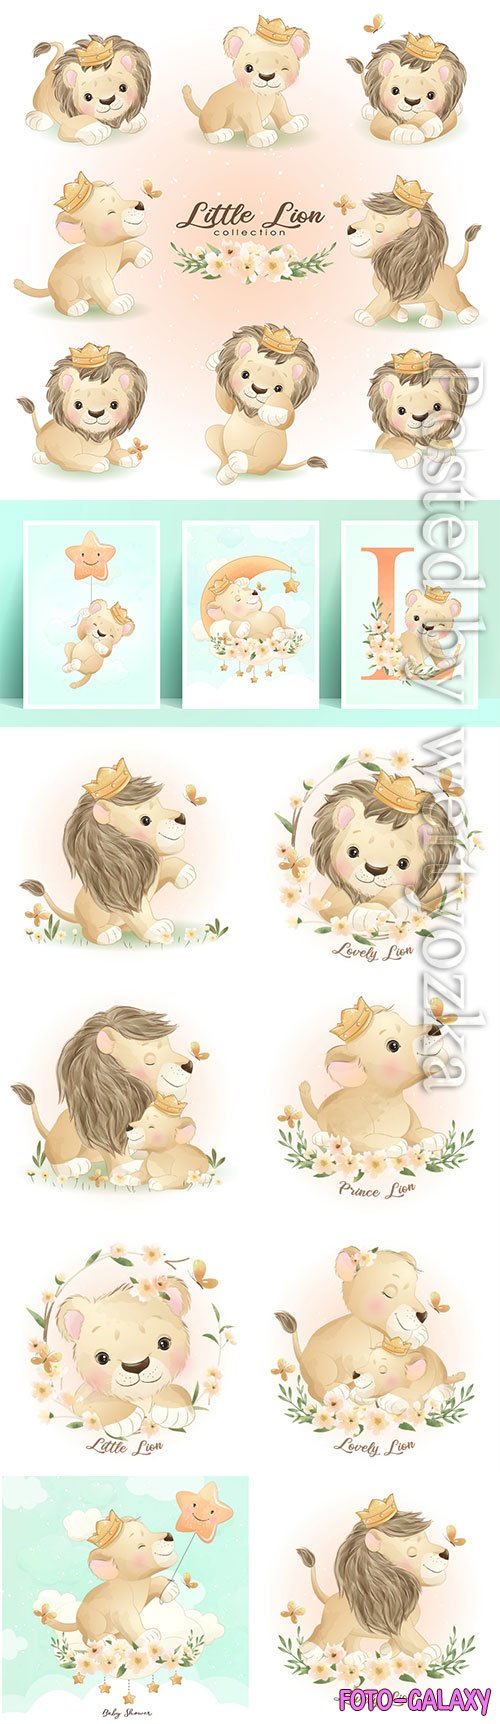 Cute doodle lion poses with floral vector illustration